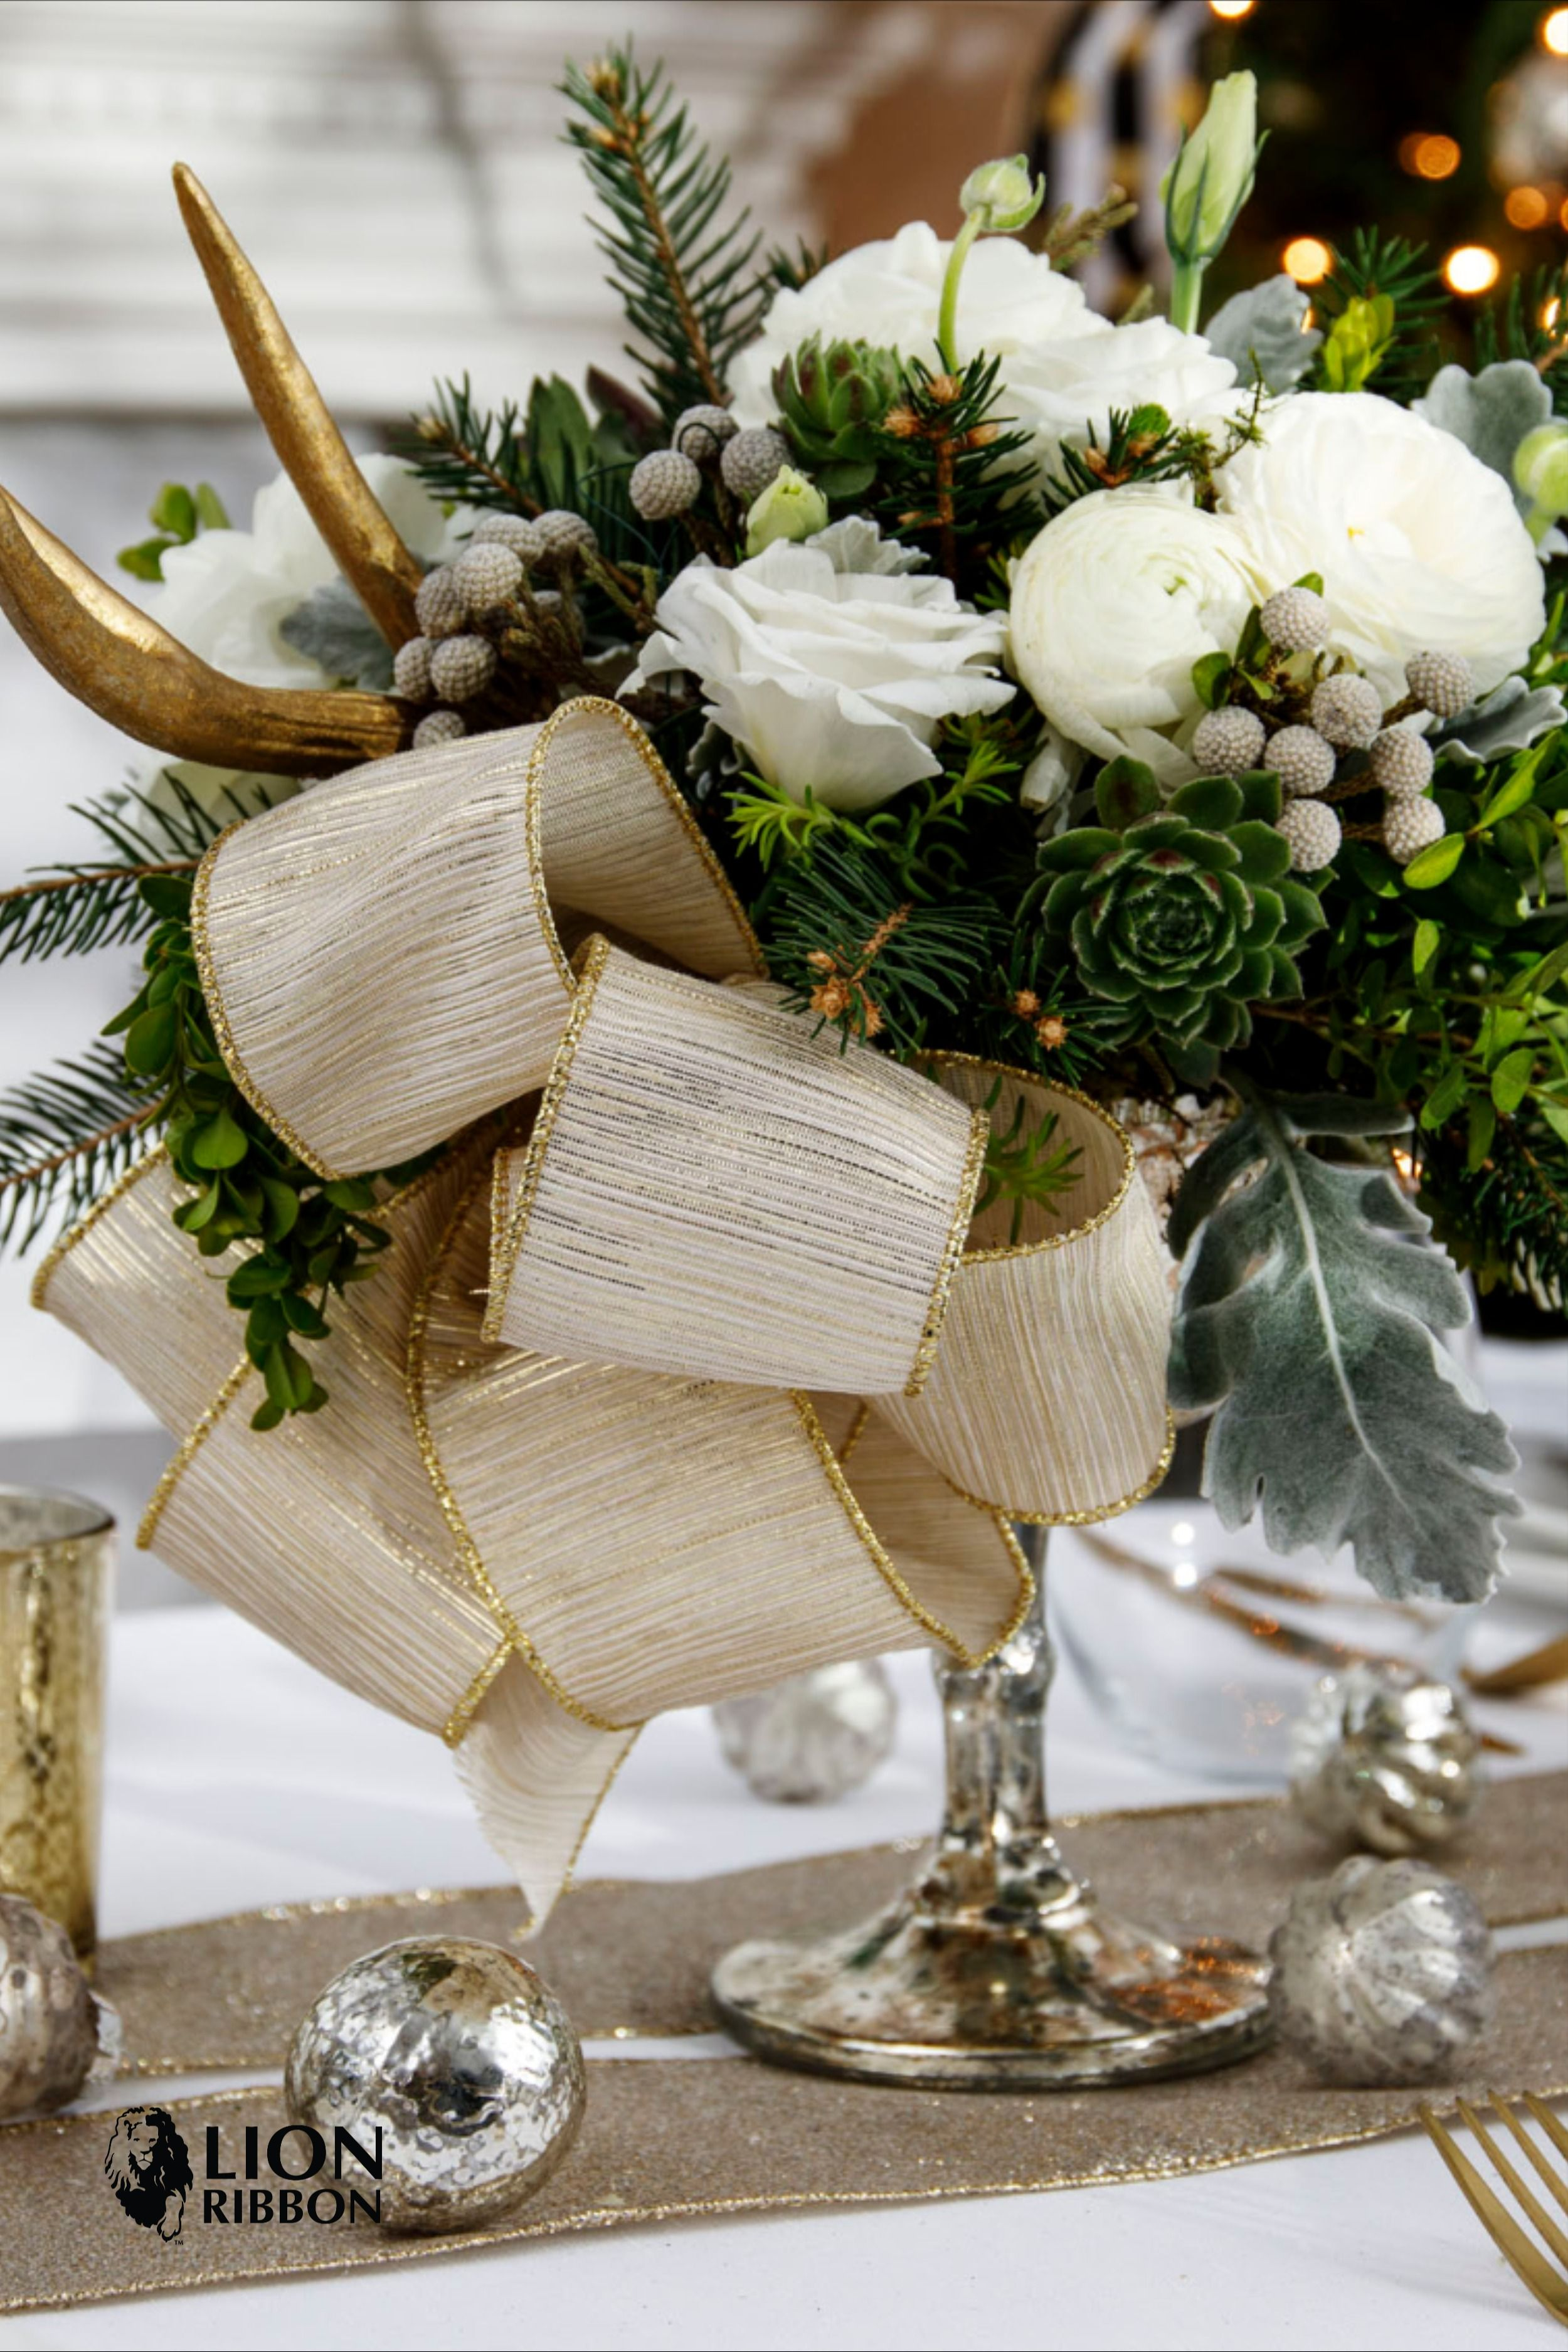 Beautiful Centerpiece Ribbon For The Holidays Holiday Table Centerpieces Holiday Centerpieces Floral Supplies